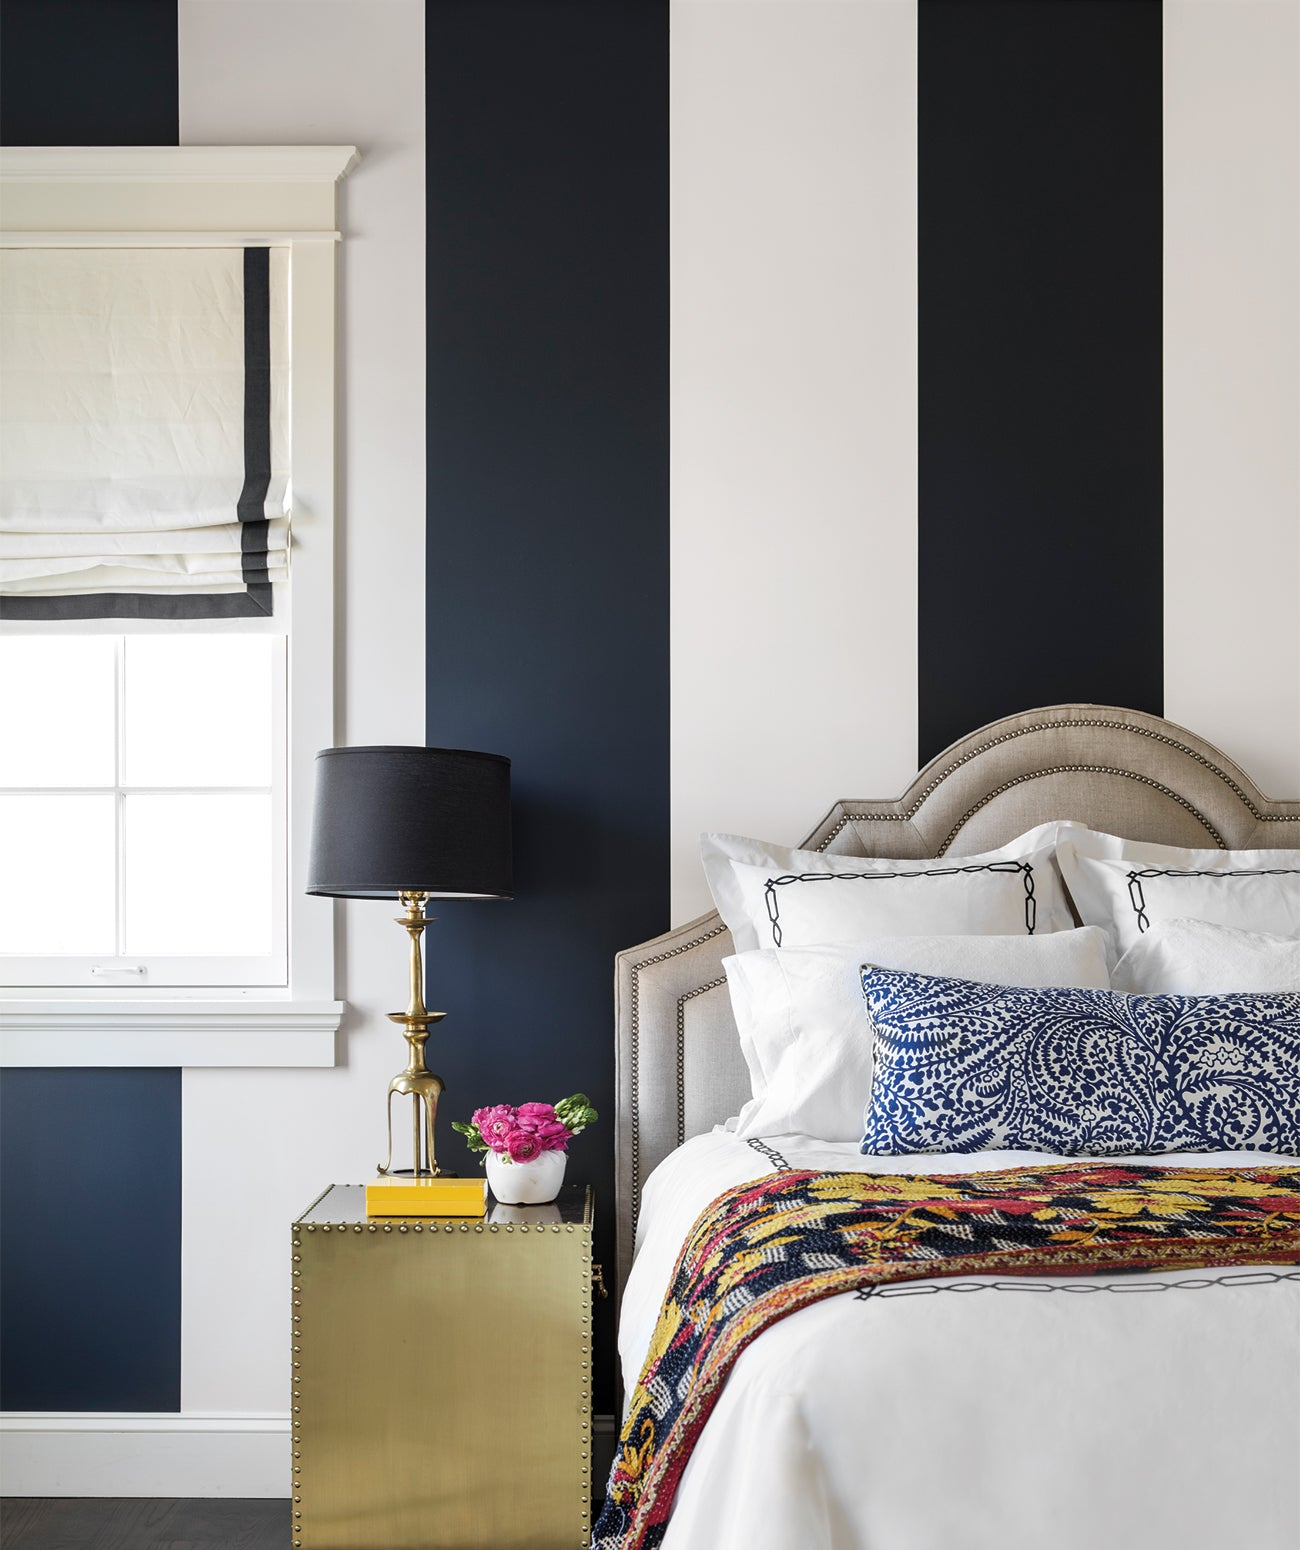 A bedroom with blue and white stripe wall decor/Photography: Laure Joliet/Go classic: These navy and white striped walls make for a tailored, crisp look in this bedroom designed by Barta Interiors.